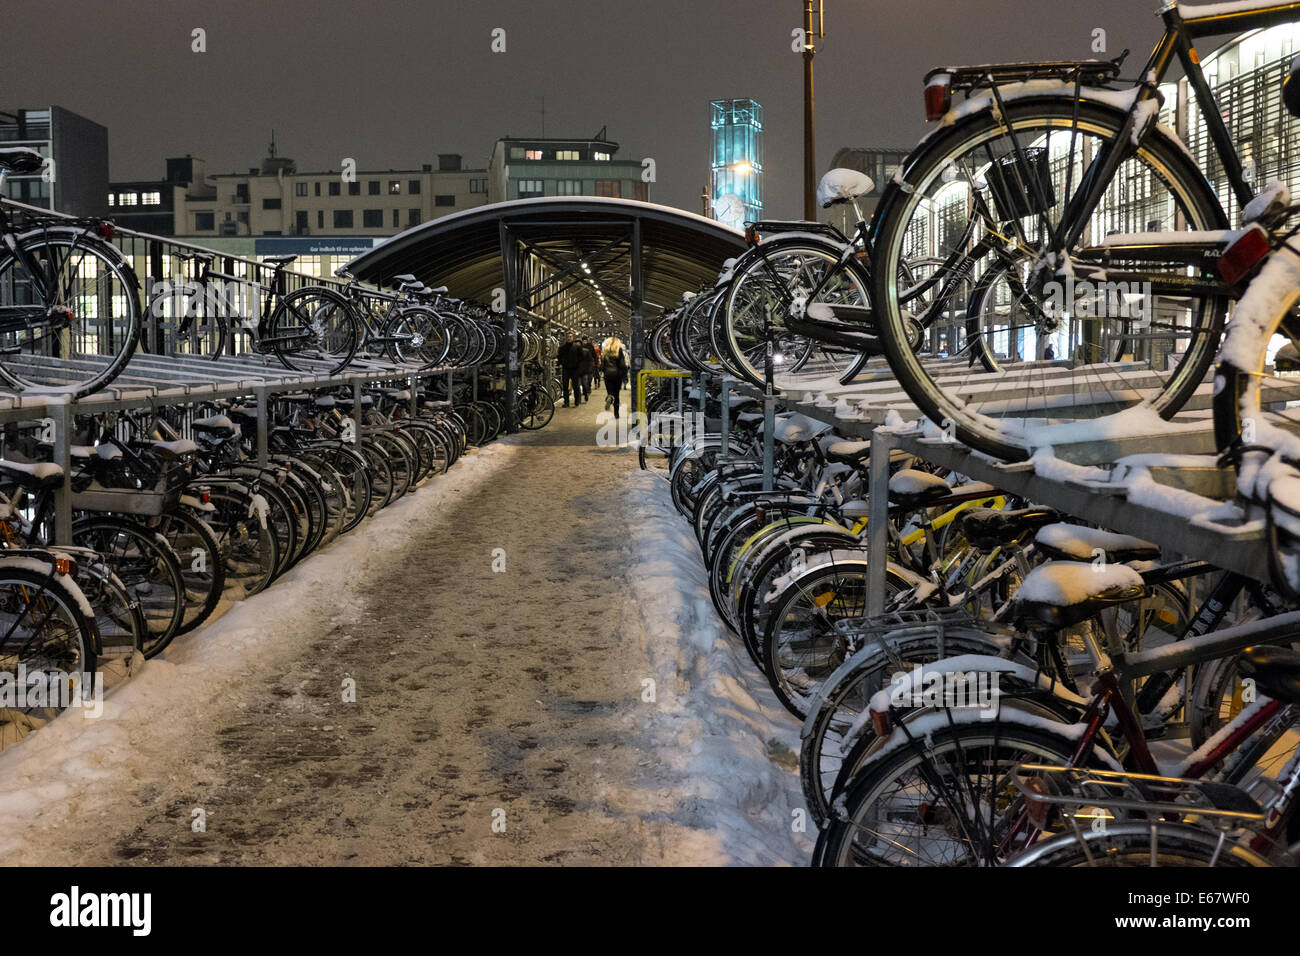 Bike parking in the train station over the train lines, in Aarhus, Denmark, Europe - Stock Image